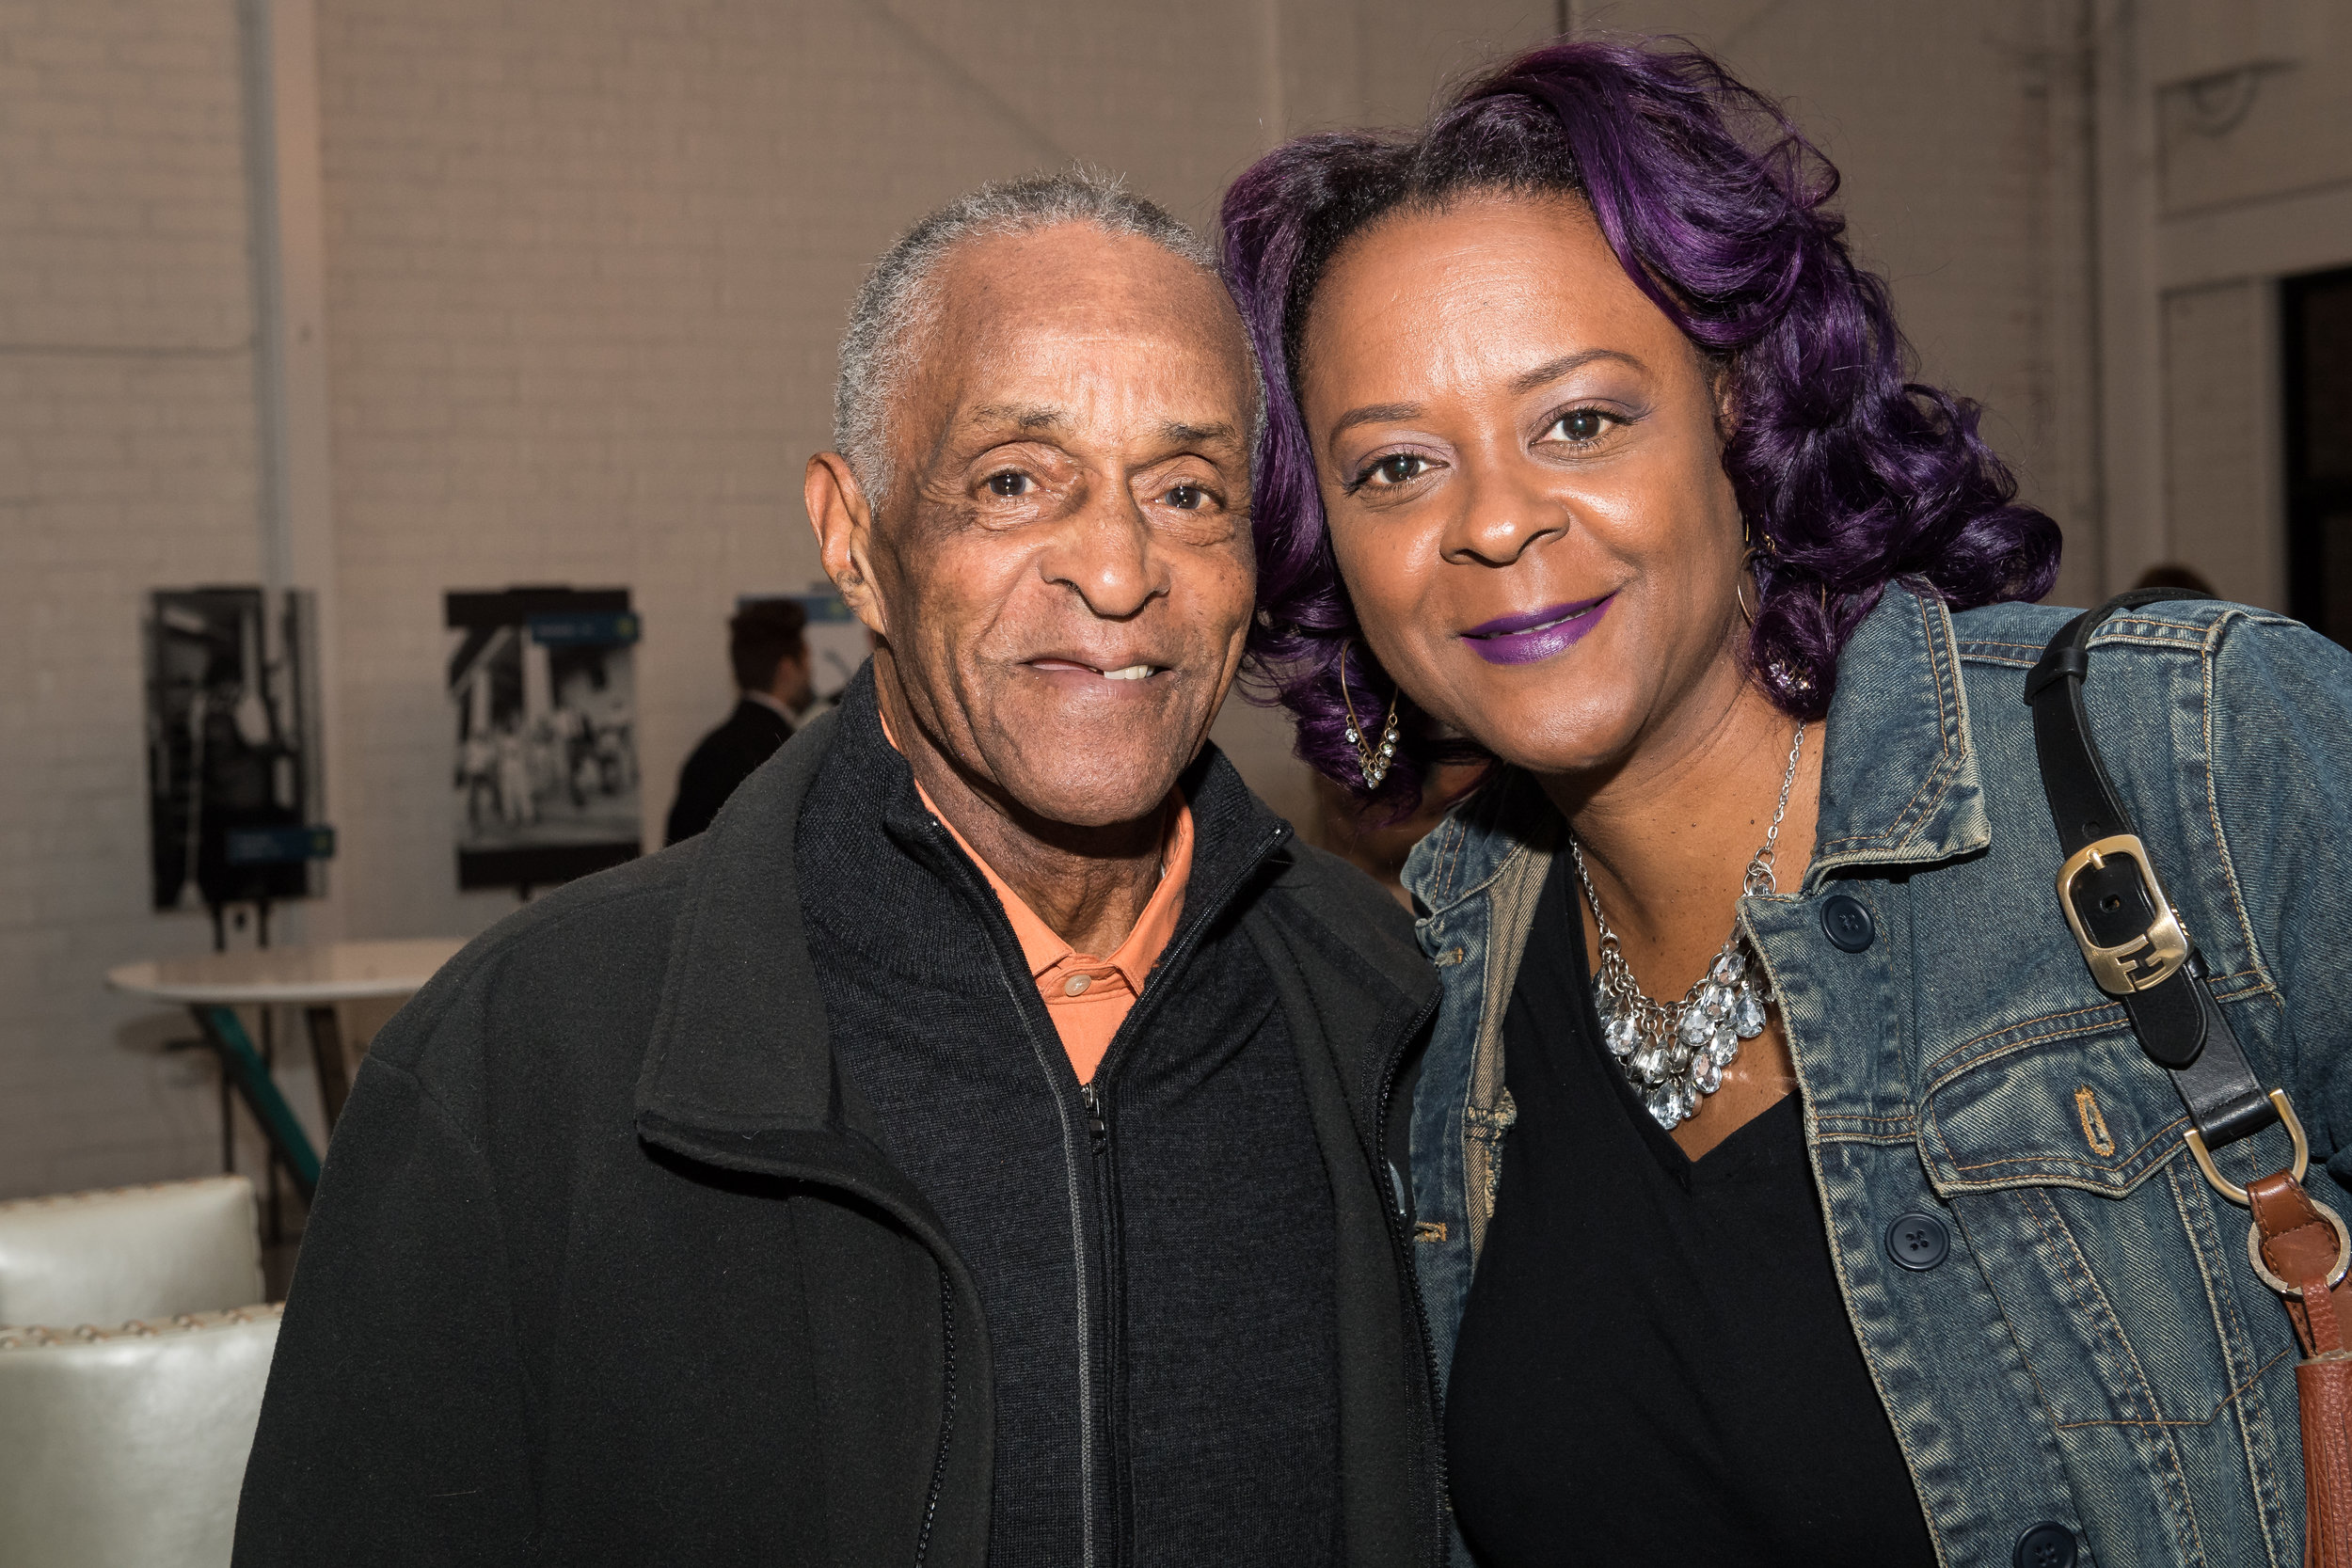 Longtime South Atlanta resident Mr. John Haygood with his daughter and FCS Board Member, Lisa Haygood.